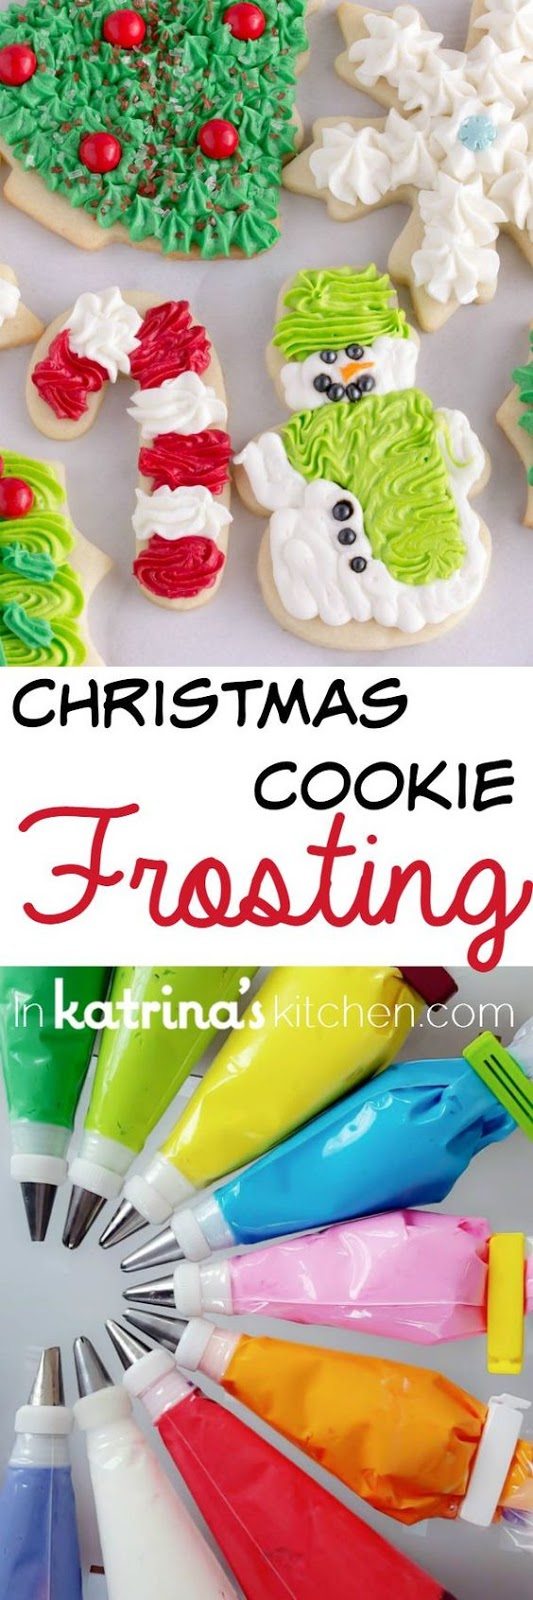 I've been perfecting my Christmas Sugar Cookies (cut outs) for 20+ years. This is the Christmas Cookie Frosting recipe I use to top them!